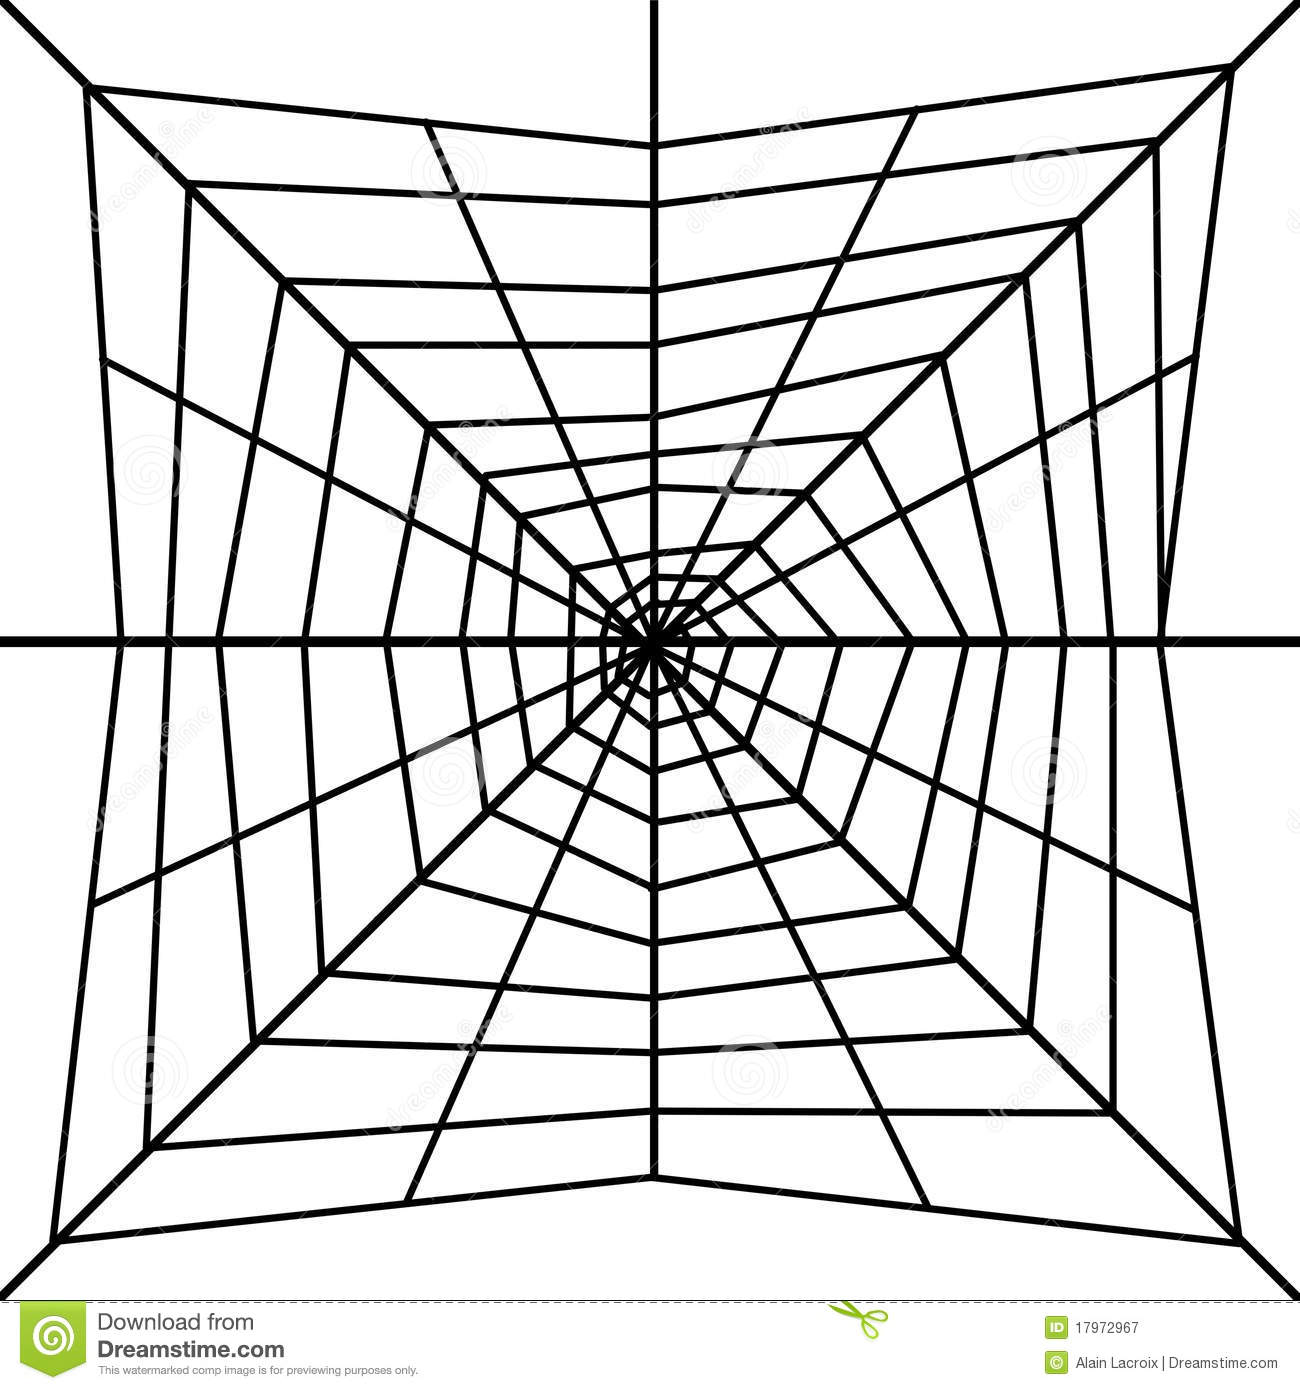 also Royalty Free Stock Photography Spider S Web Image17972967 as well View Image furthermore 1066164 Royalty Free Spider Clipart Illustration together with News 009542 Panini  ics Preview Vf Spider Man Hors Serie 1. on spider silk